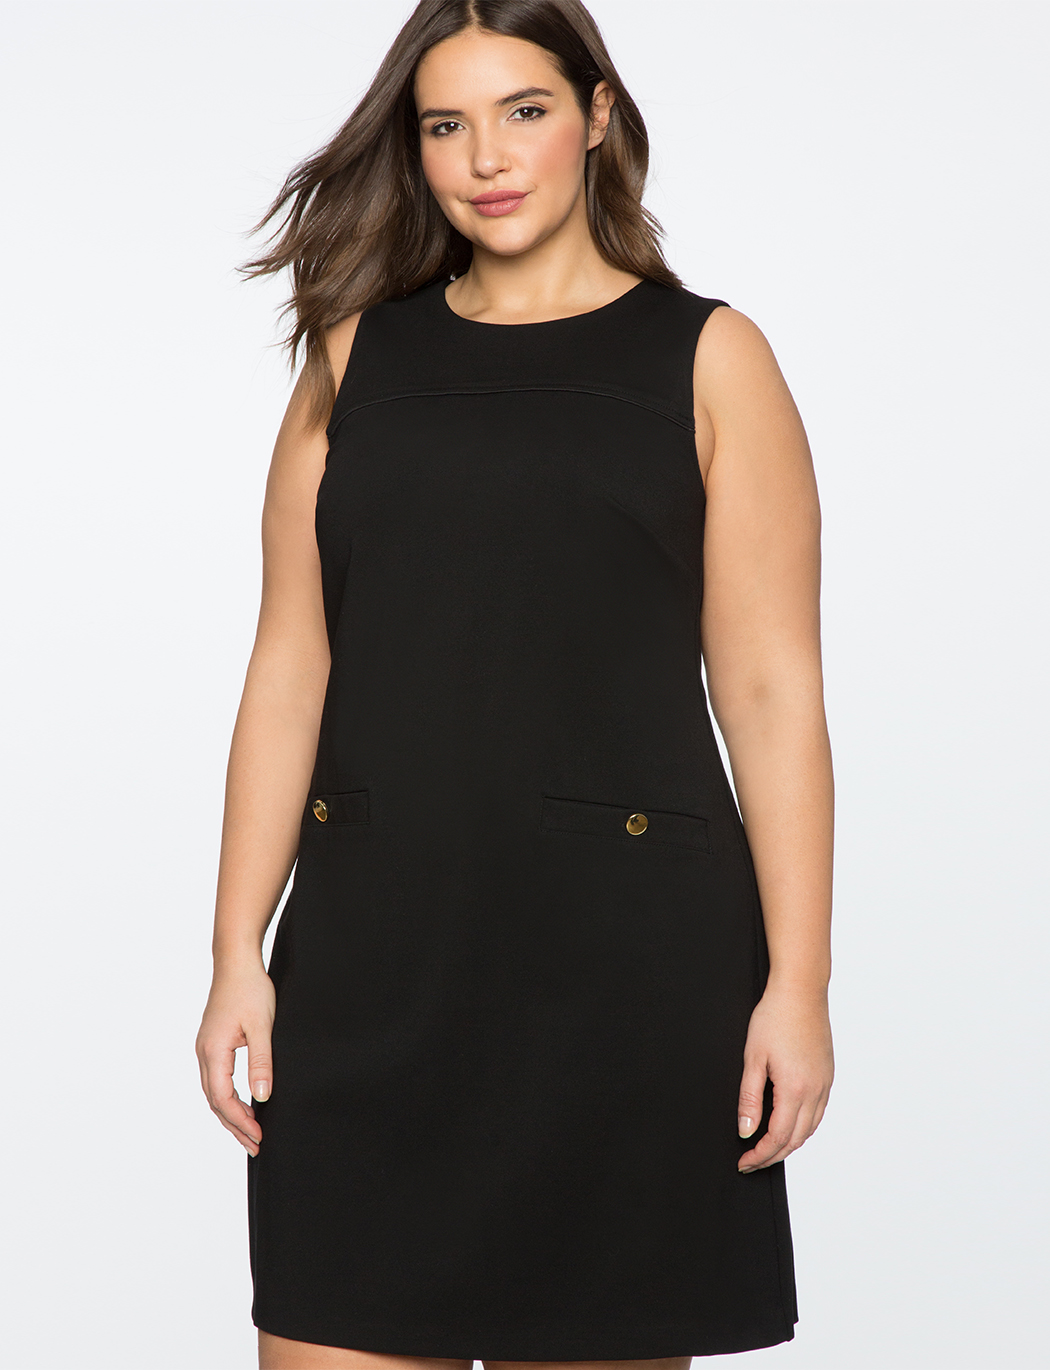 9-to-5 Sleeveless Stretch Work Dress